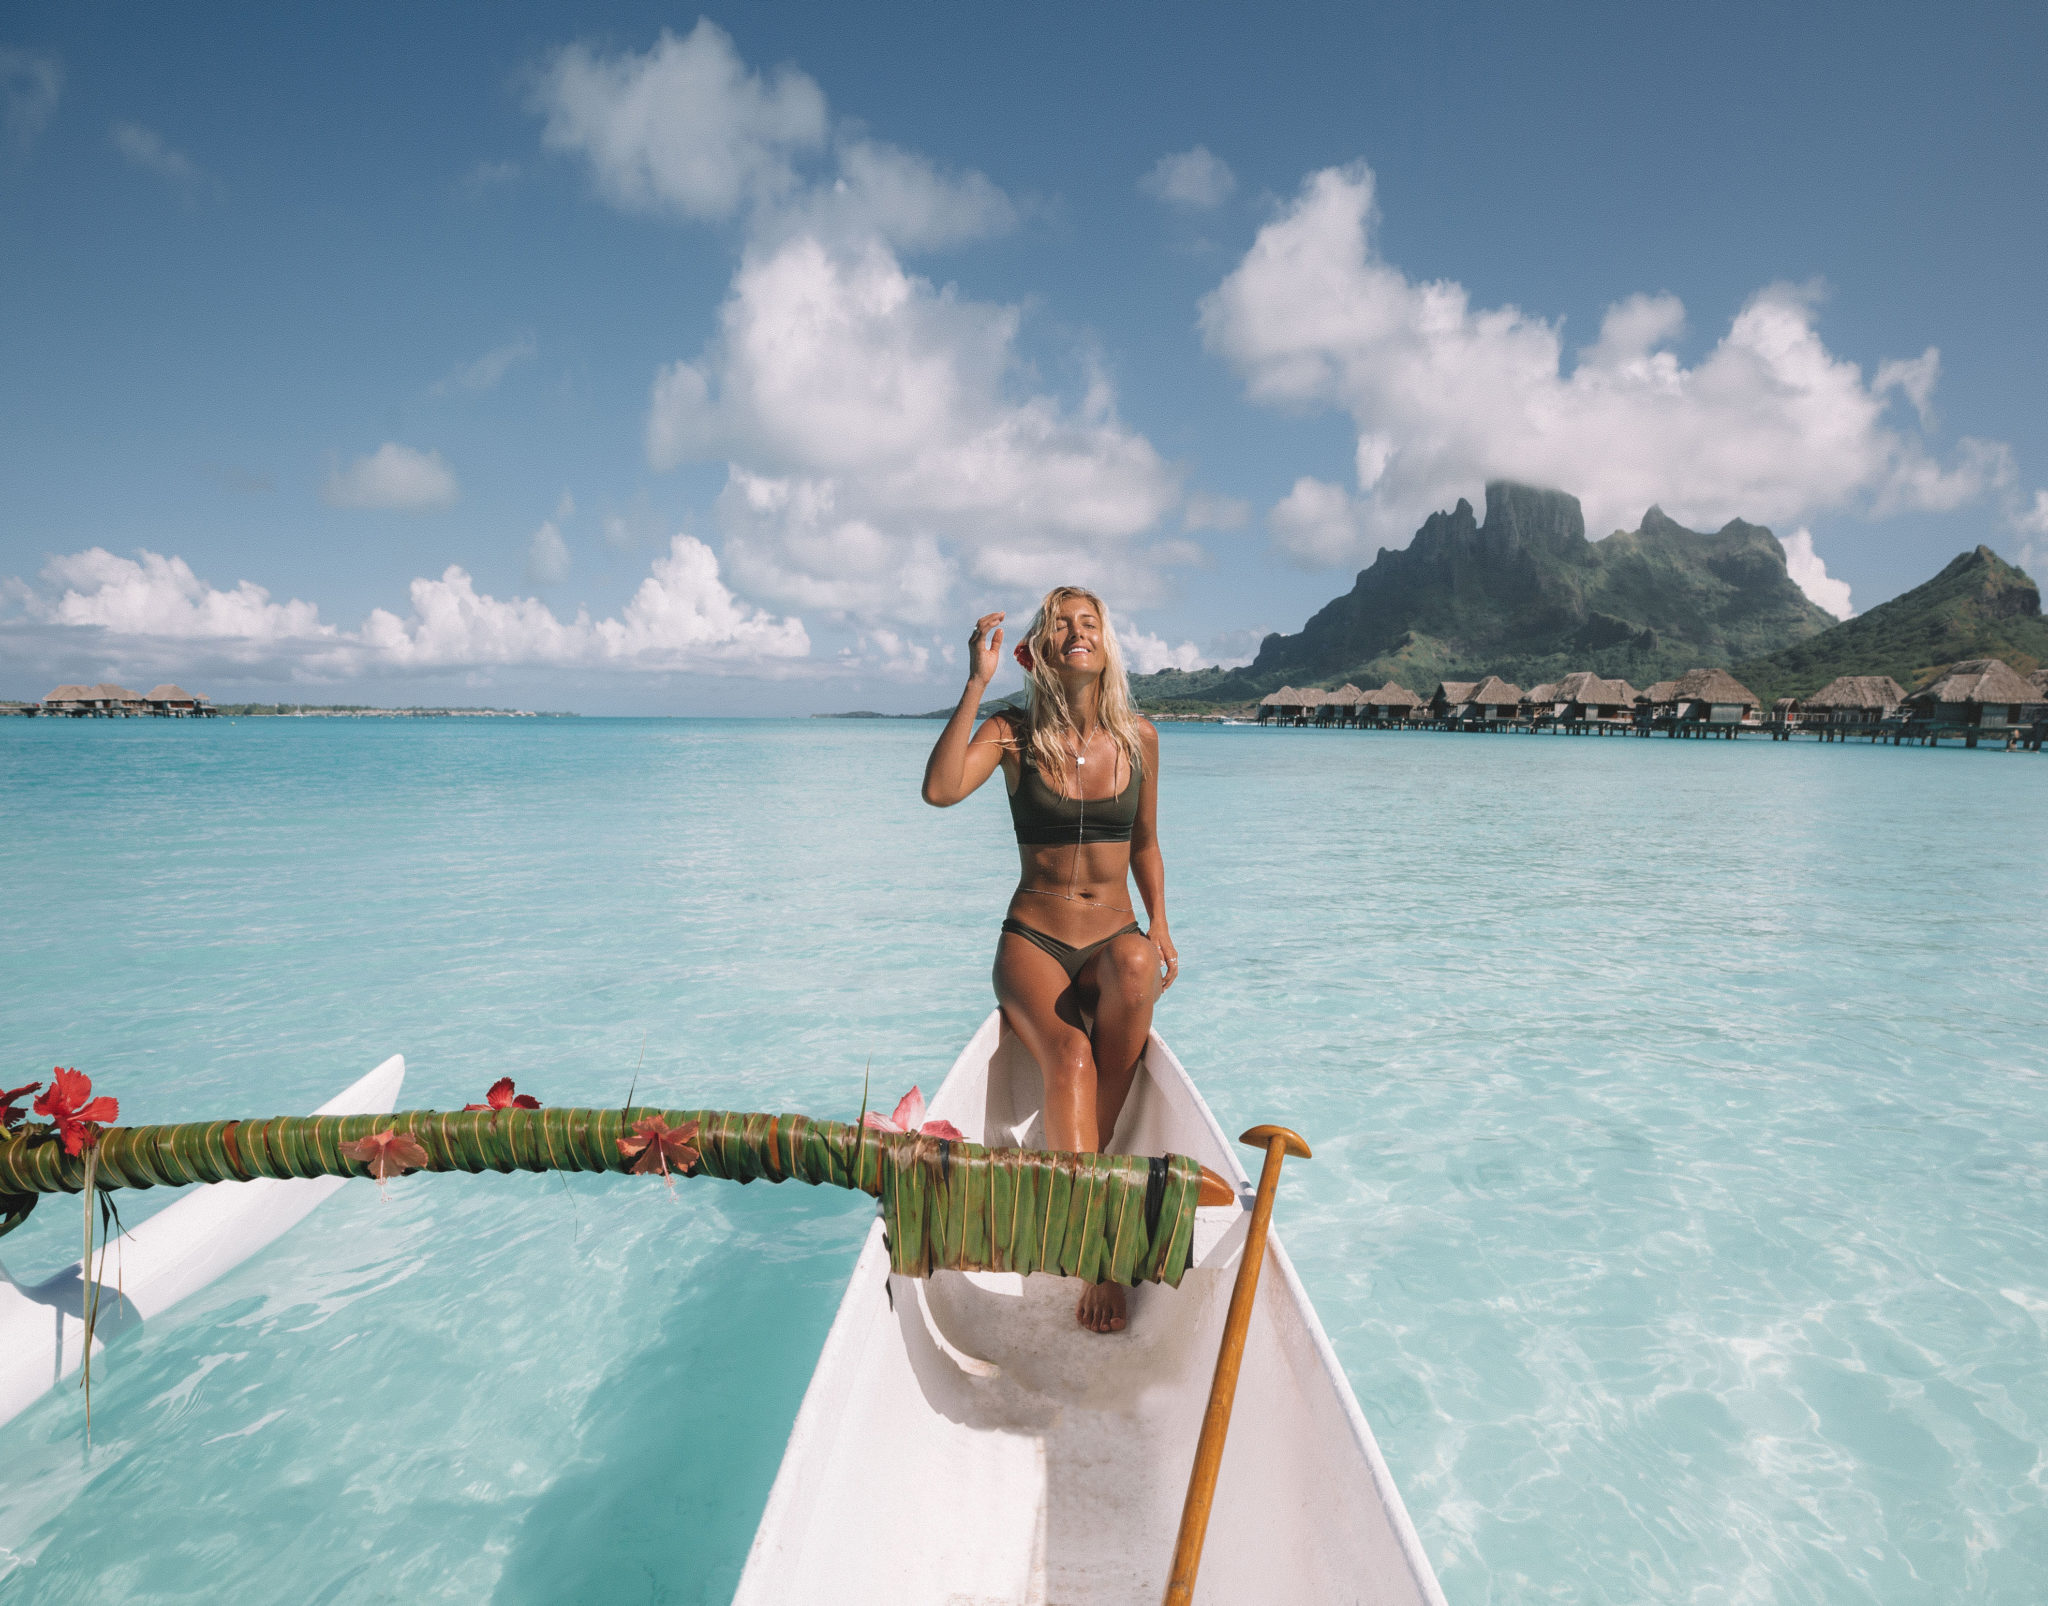 Imagine The Maldives Surrounded By Hawaiian Landscape, Thats Pretty Much  The Only Was To Compare It! We Stayed In An Overwater Bungalow U2013 It Wasnu0027t  Uncommon ...